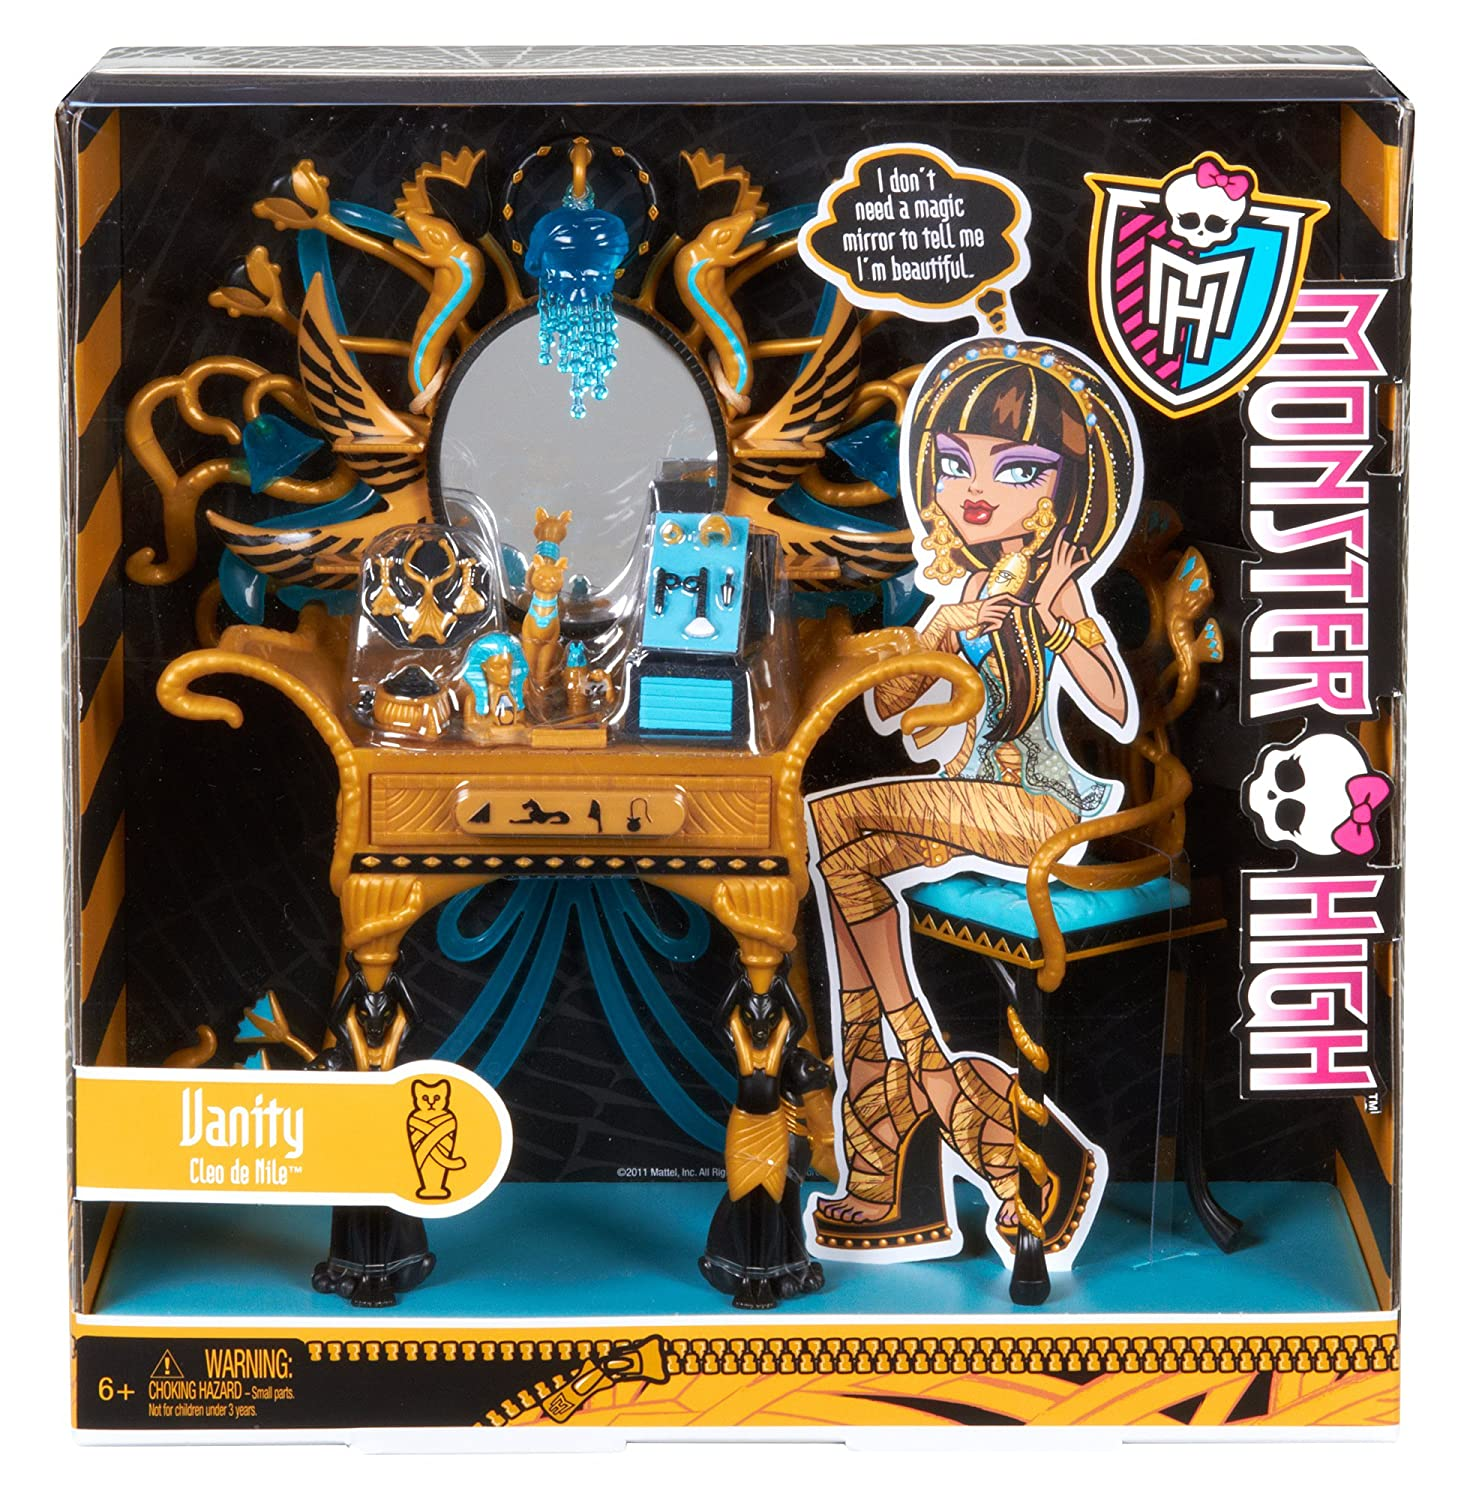 Amazoncom Monster High Cleo de Niles Vanity Accessory Toys  Games